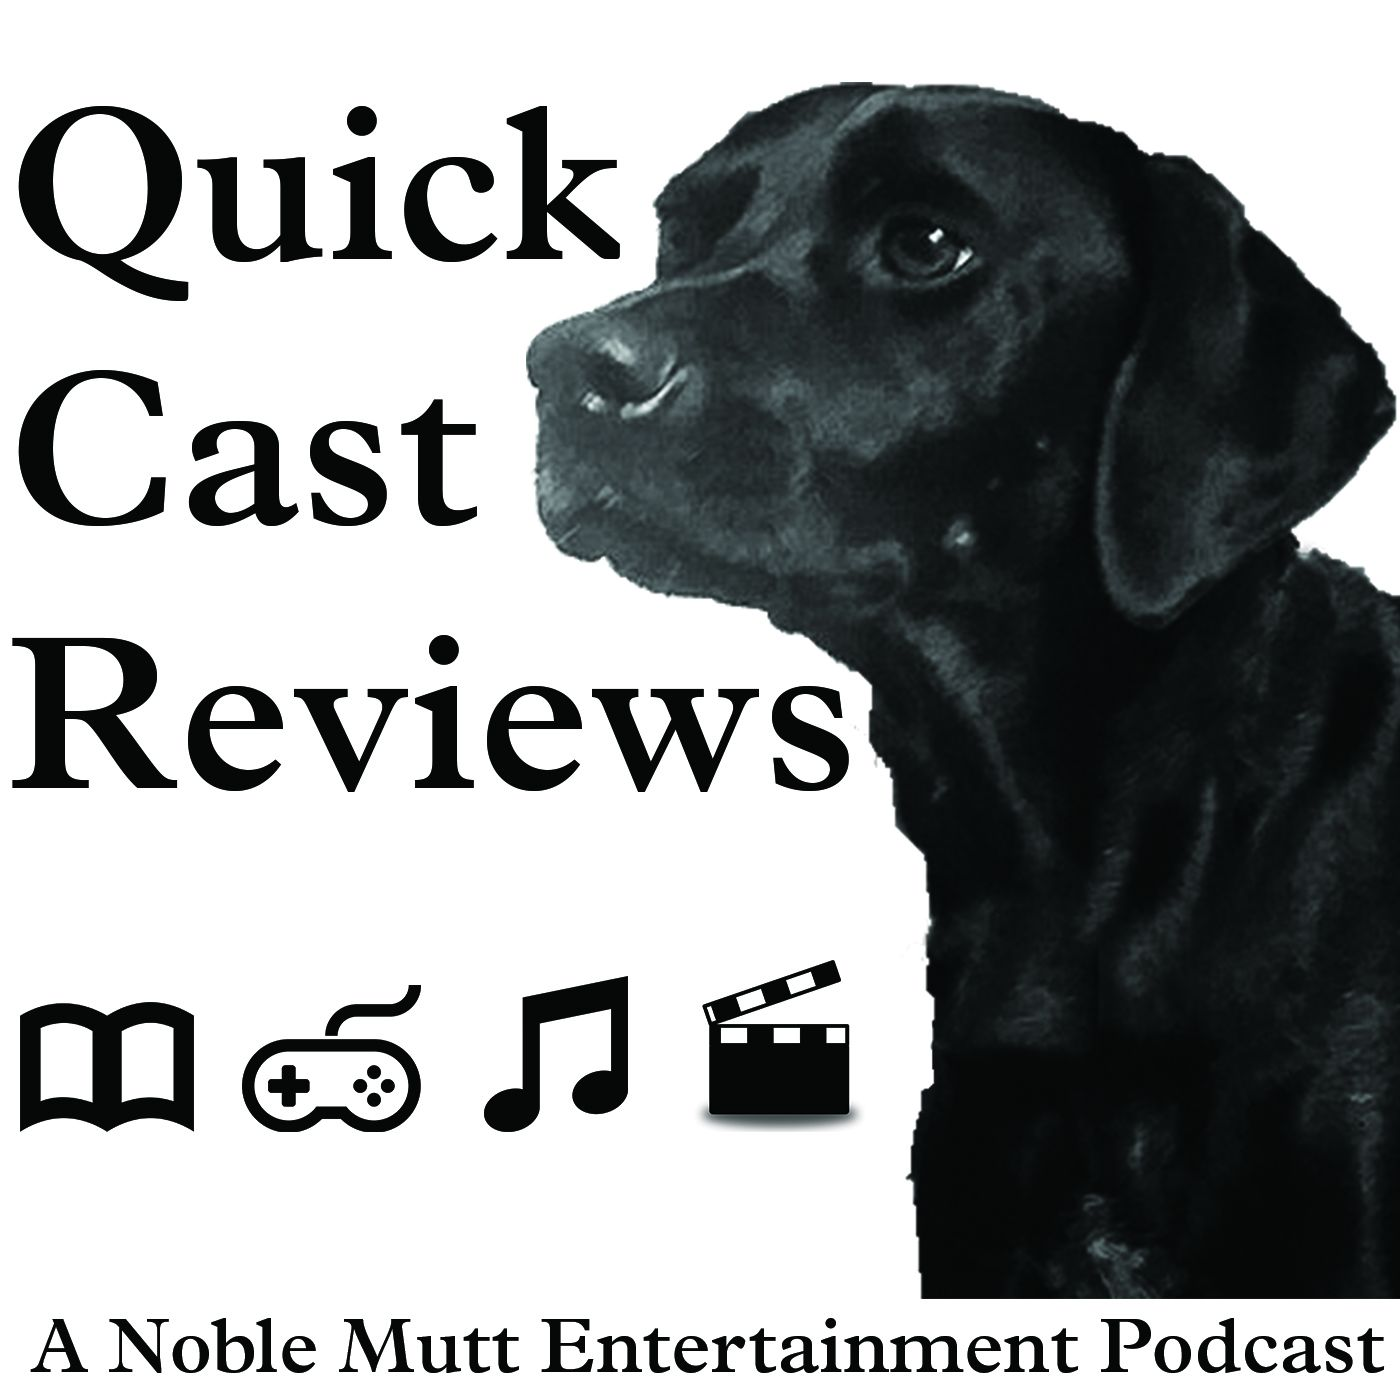 Quick Cast Reviews